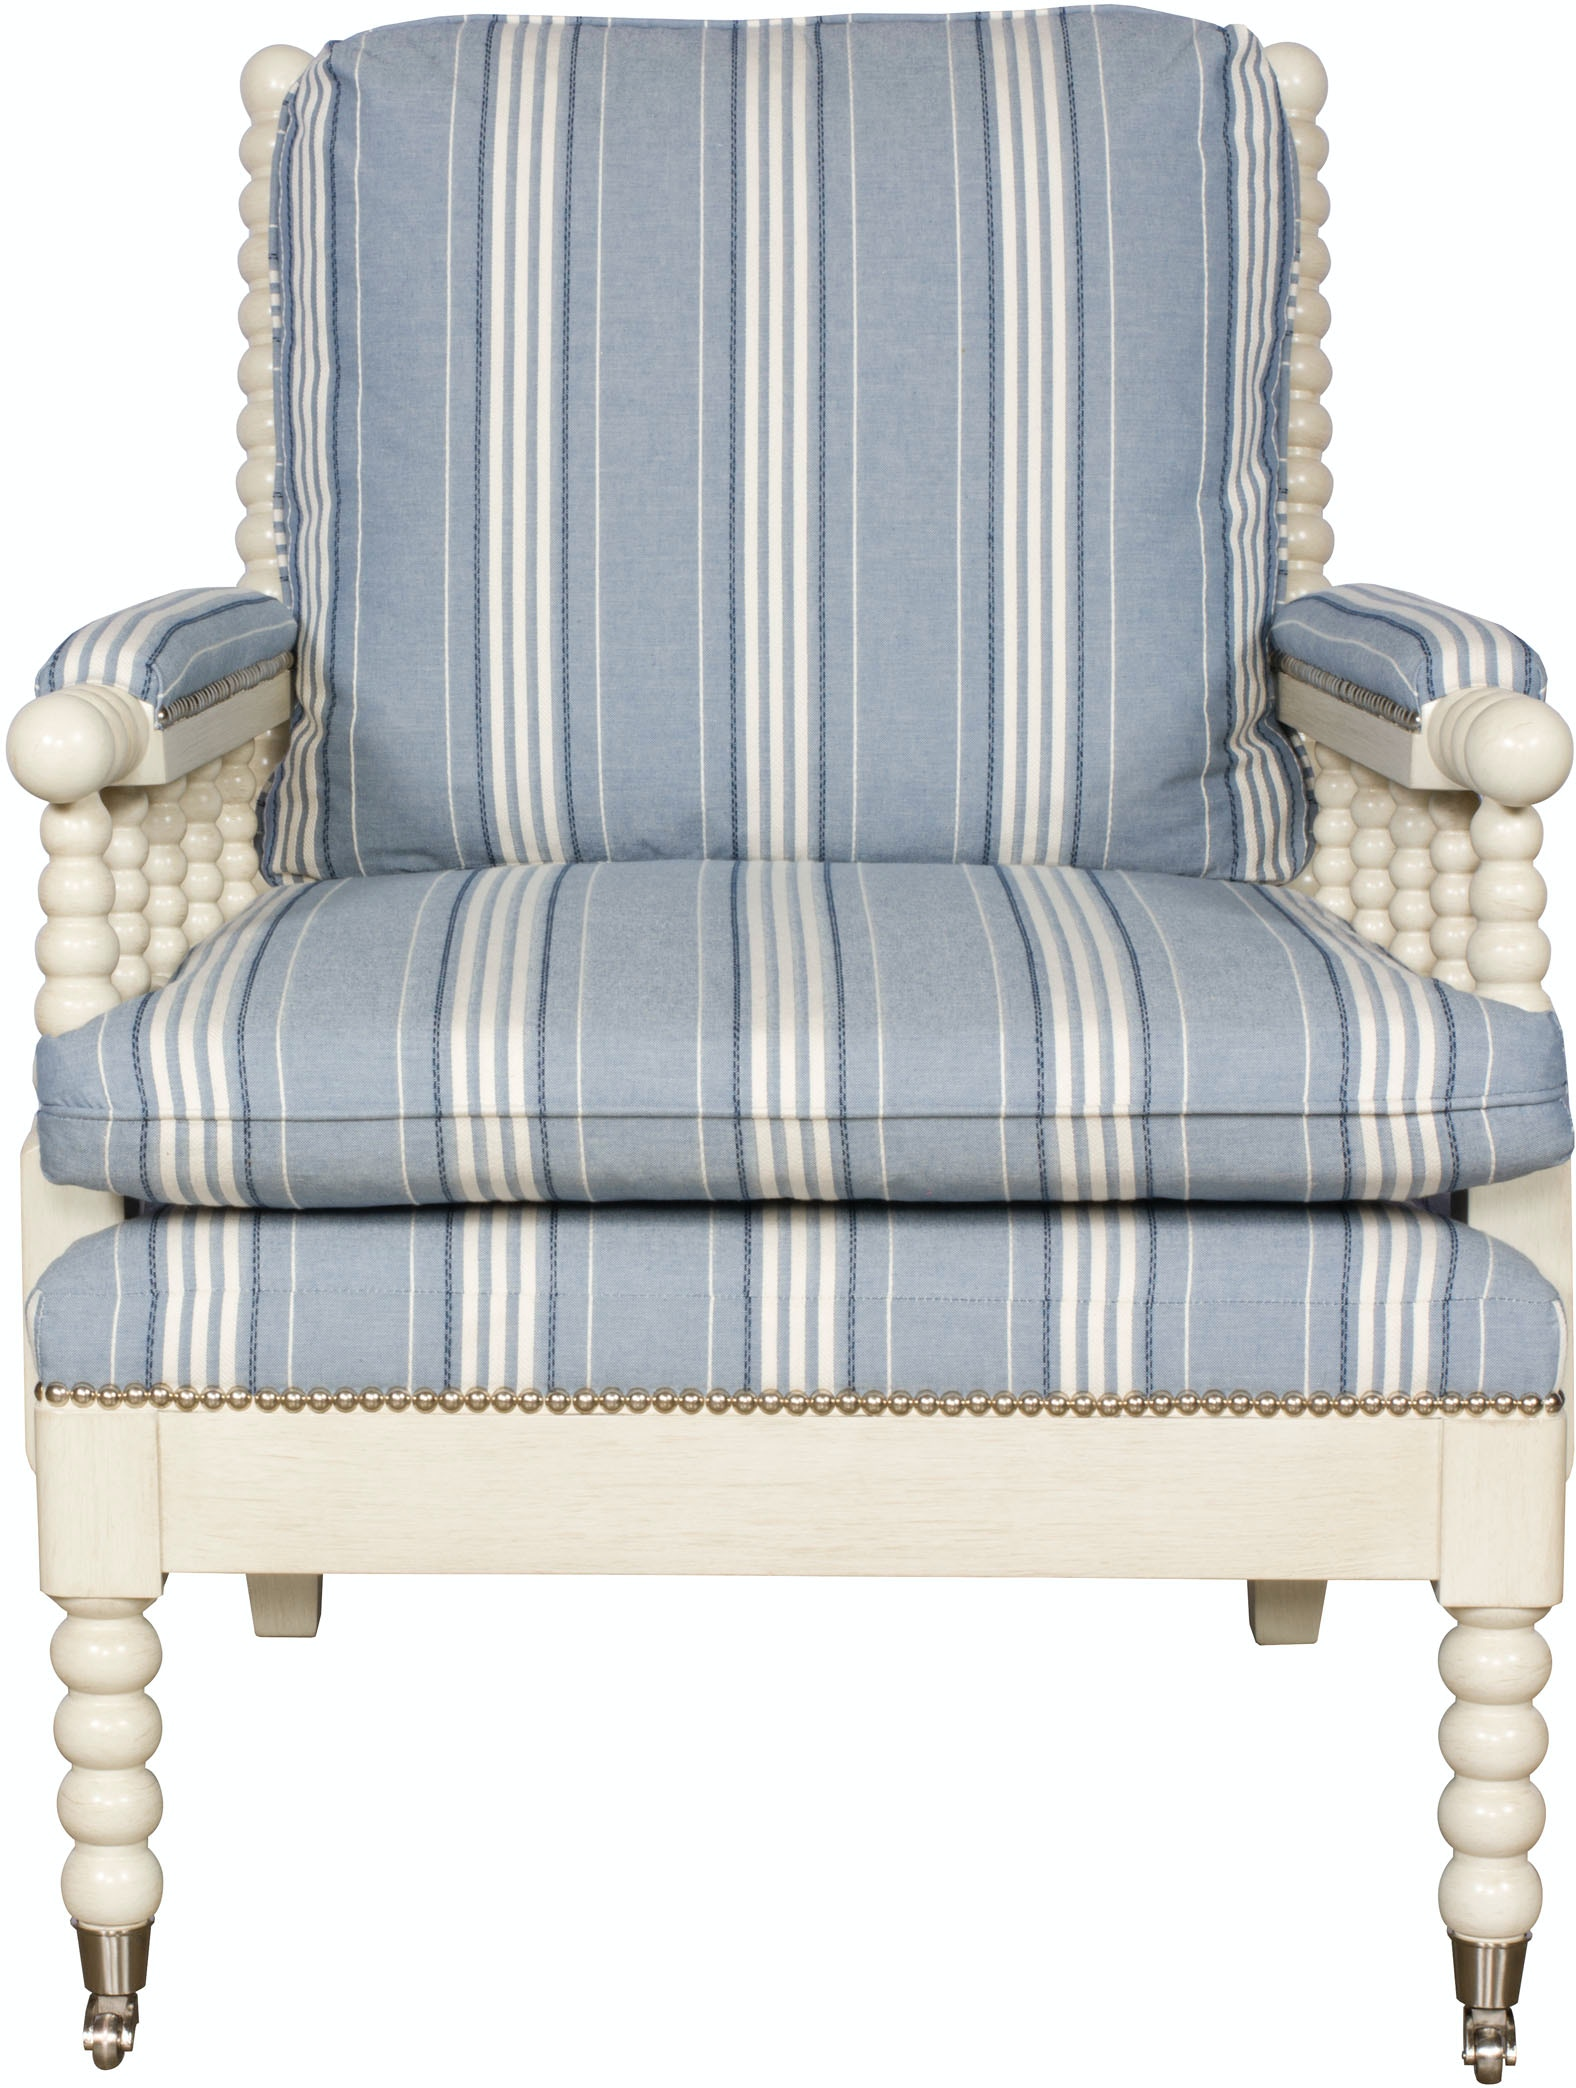 Vanguard Living Room Bell Spool Chair 4502 CH Whitley Furniture